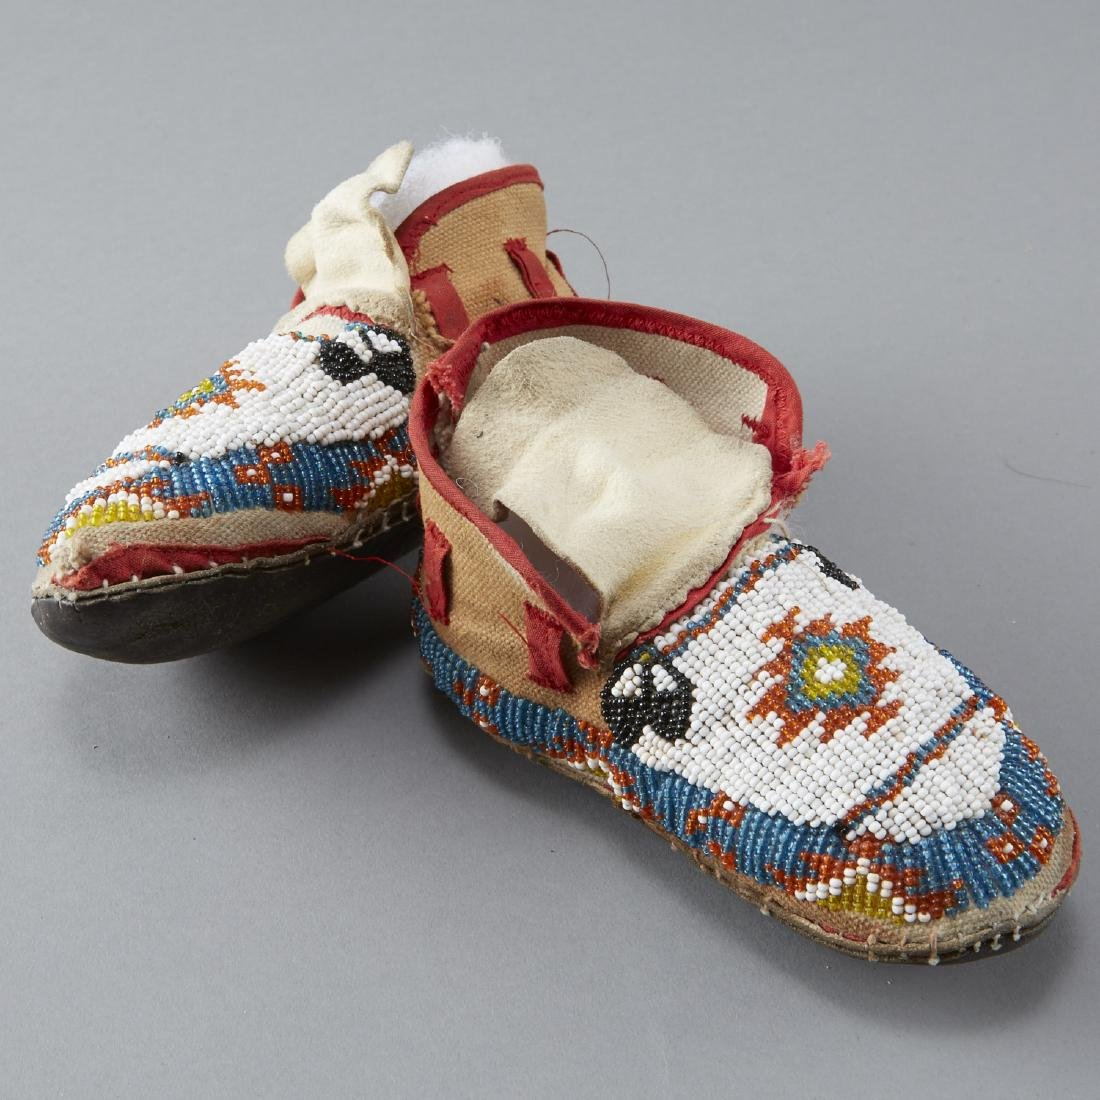 10 Pairs Beaded Children's Moccasins - 2